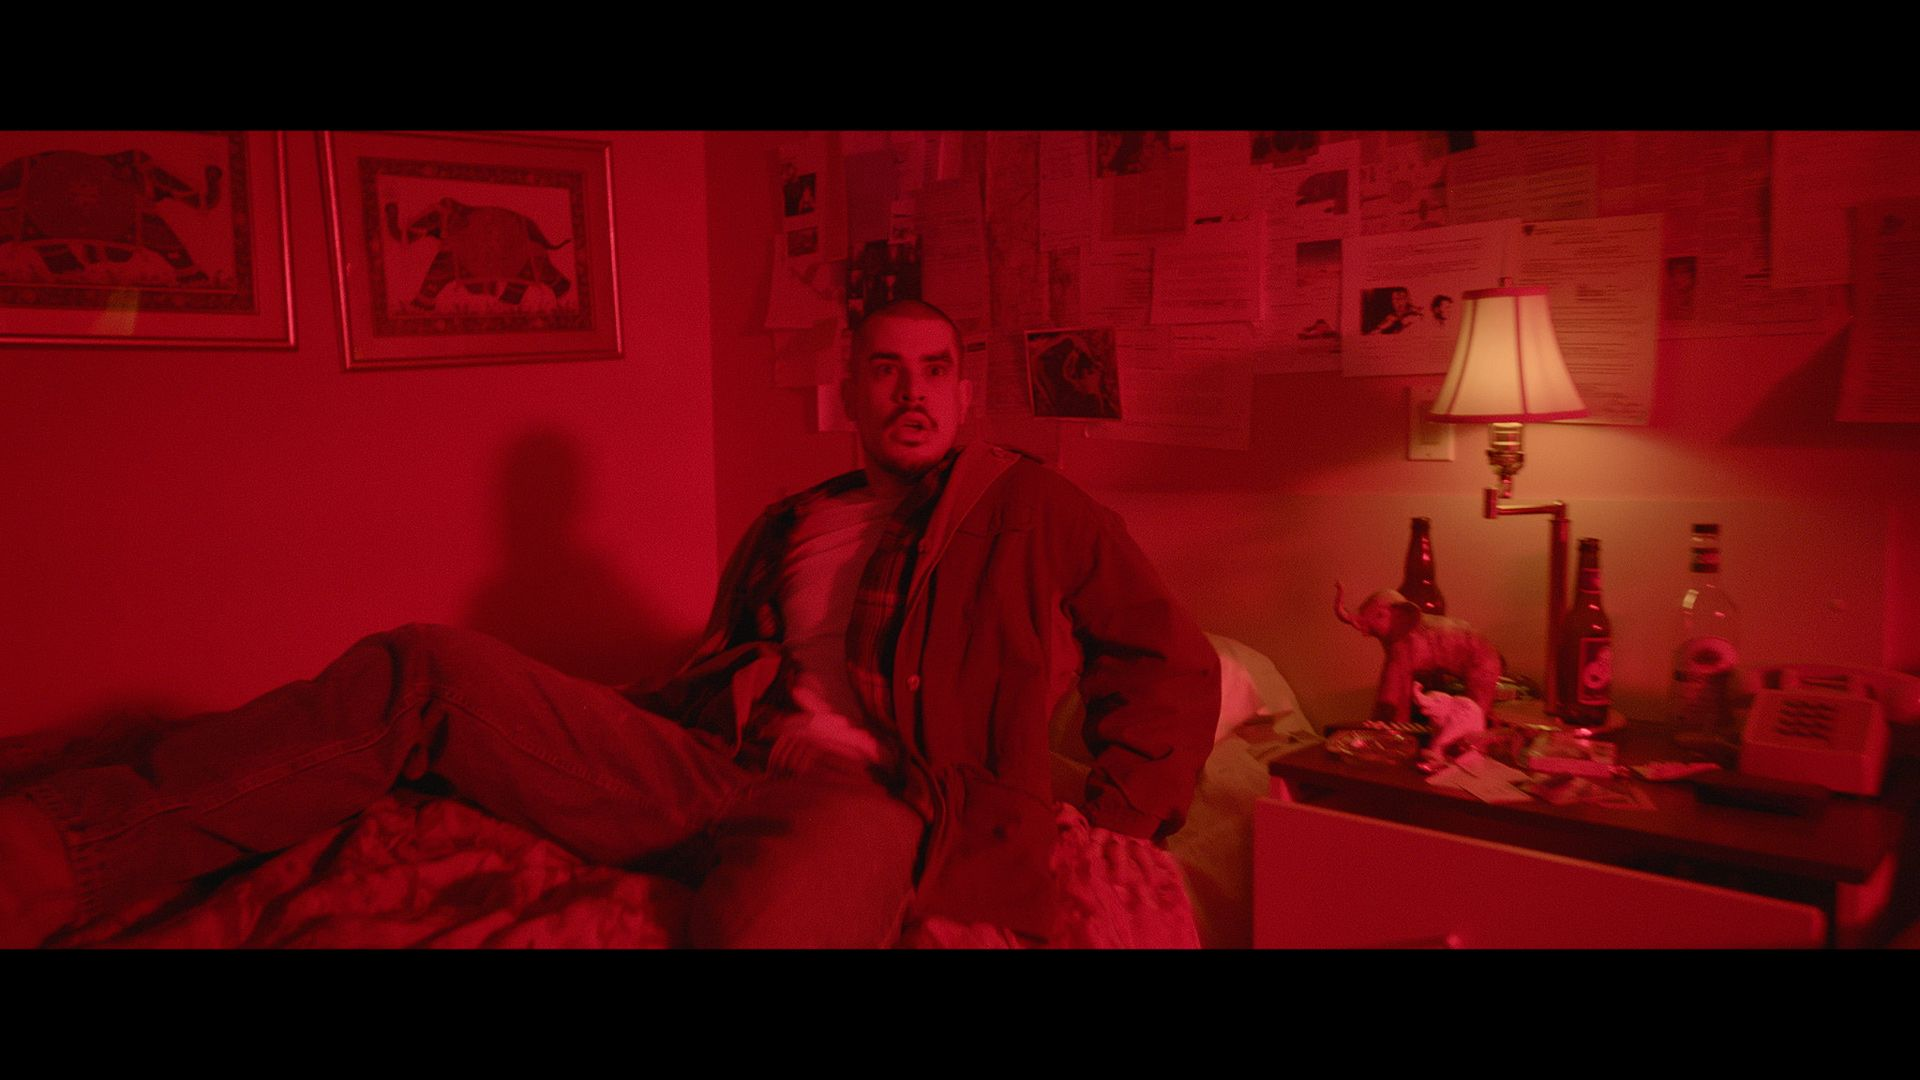 rapper Koriass with wound on his head waking in bed in room basket in red lighting for music video of Elephant filmed by Les Gamins